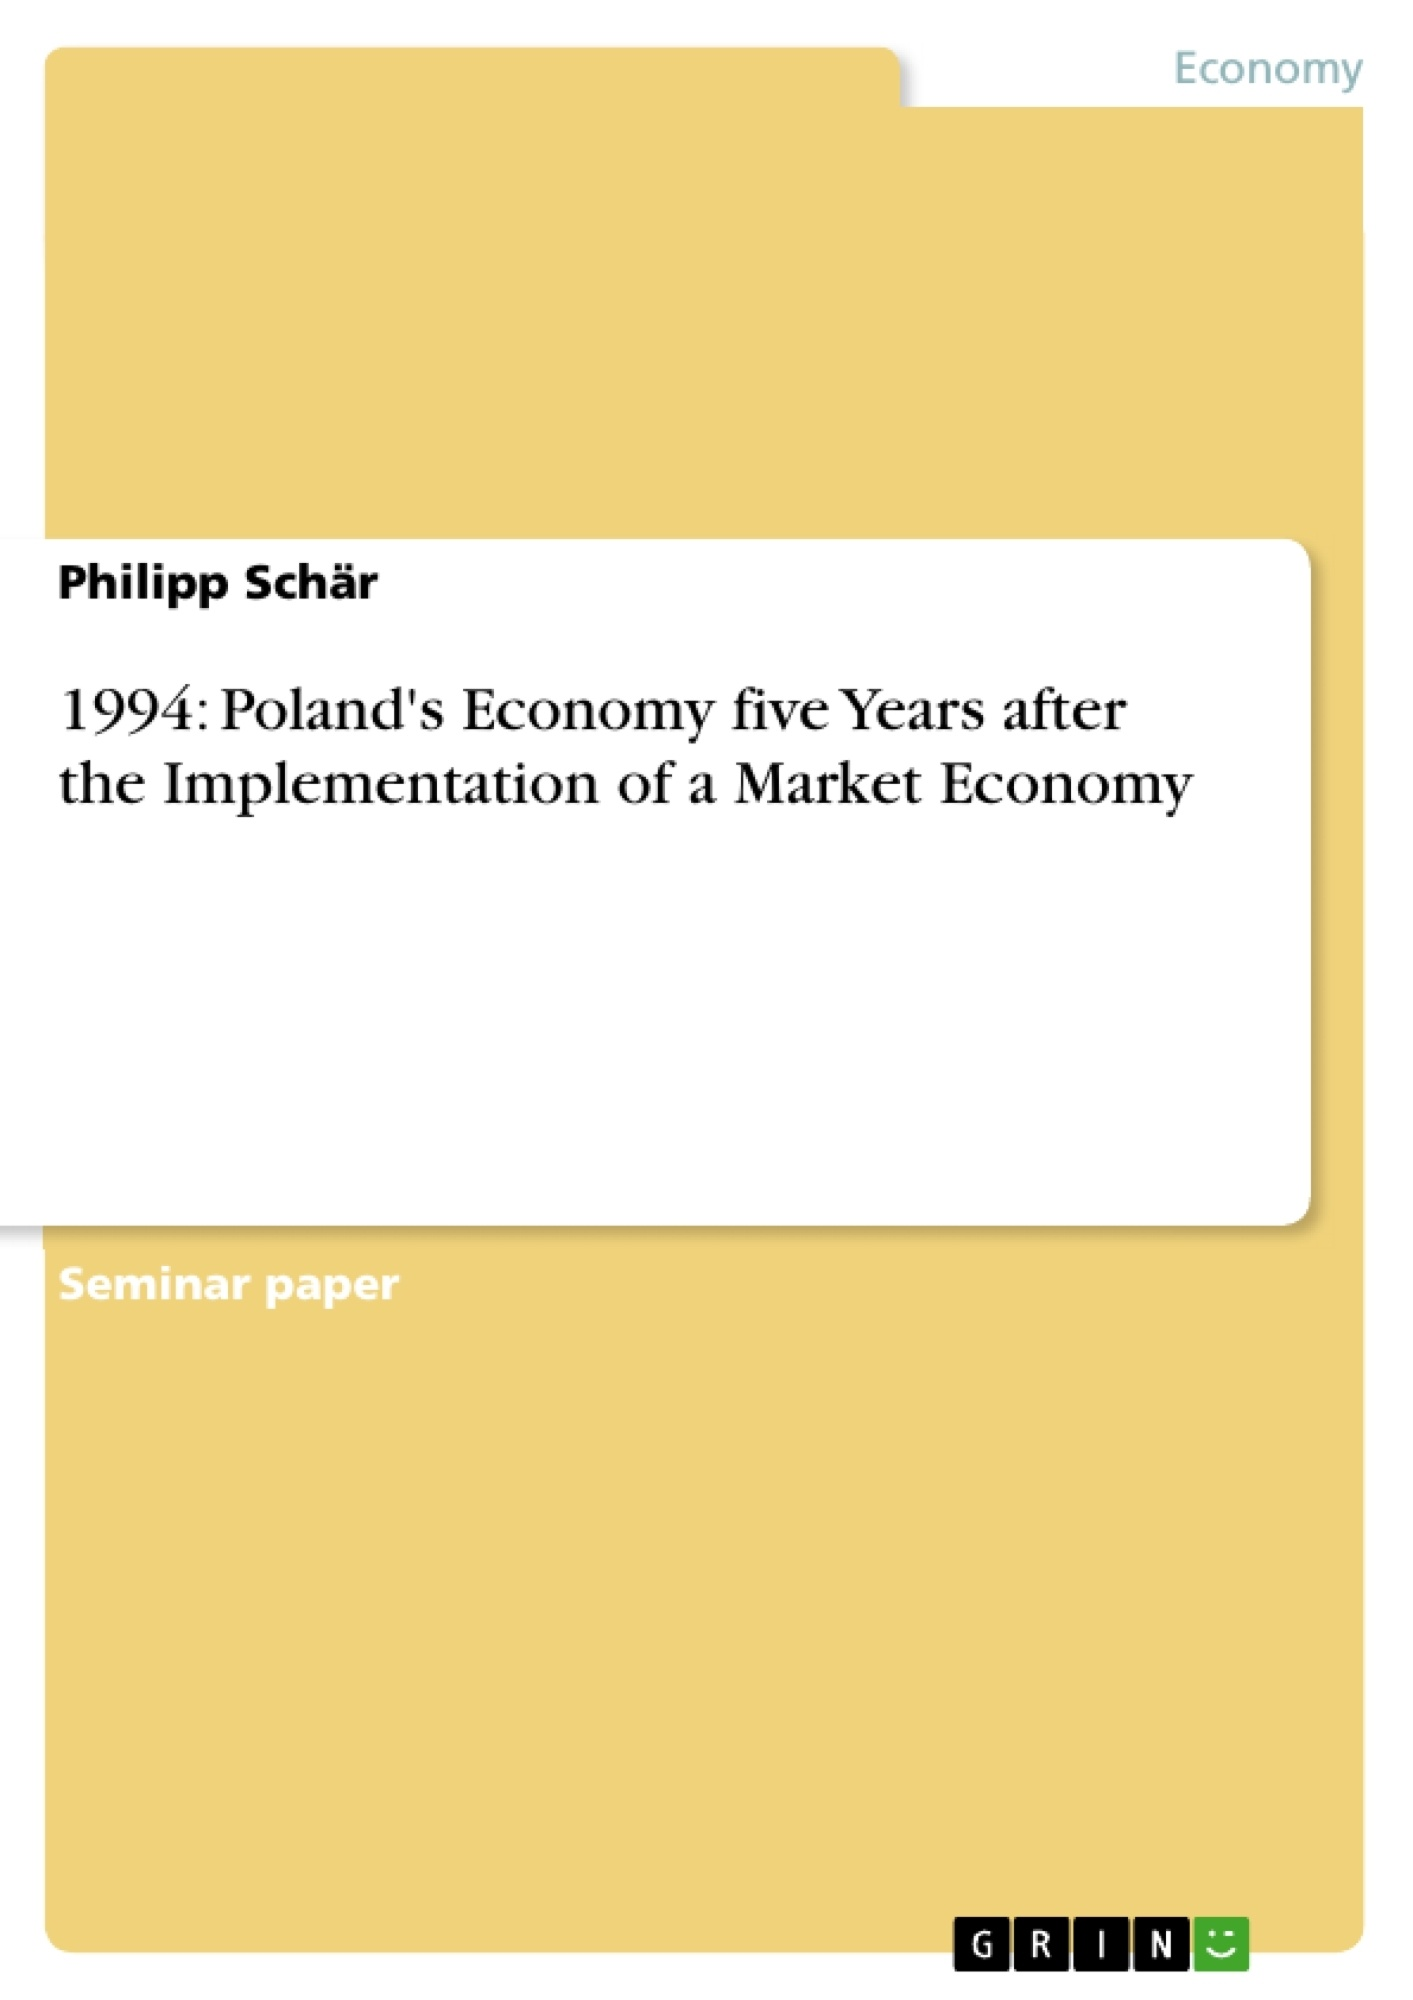 Title: 1994: Poland's Economy five Years after the Implementation of a Market Economy